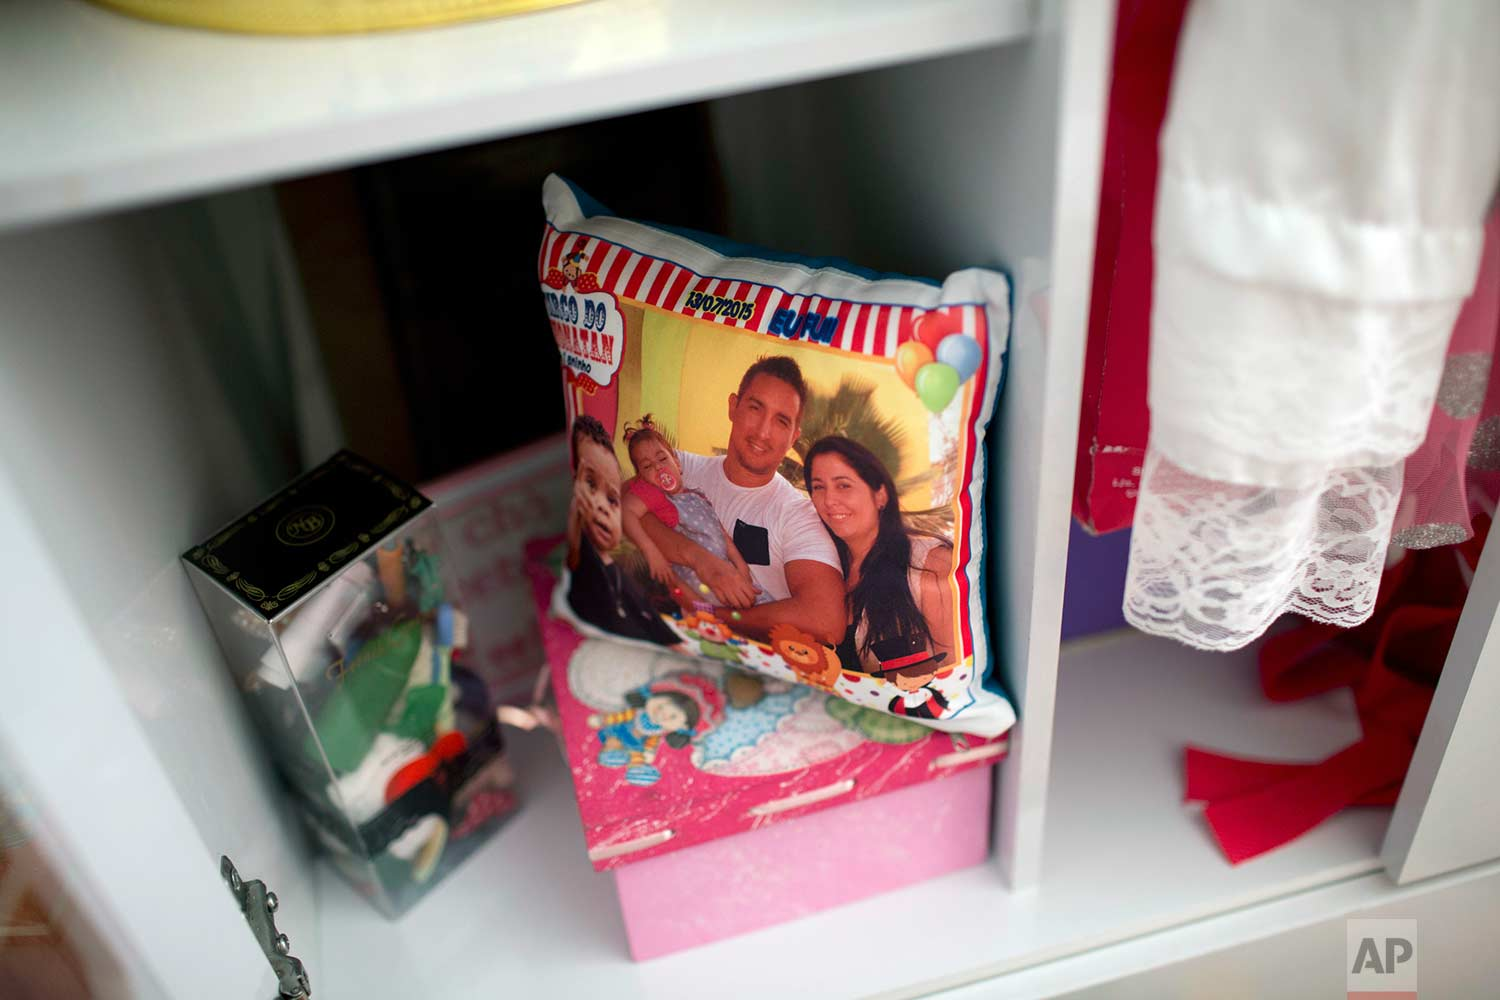 This Aug. 17, 2017 photo shows a souvenir pillow from a birthday party attended by the family of police officer Felipe Fernandes, in Rio de Janeiro, Brazil. (AP Photo/Silvia Izquierdo)